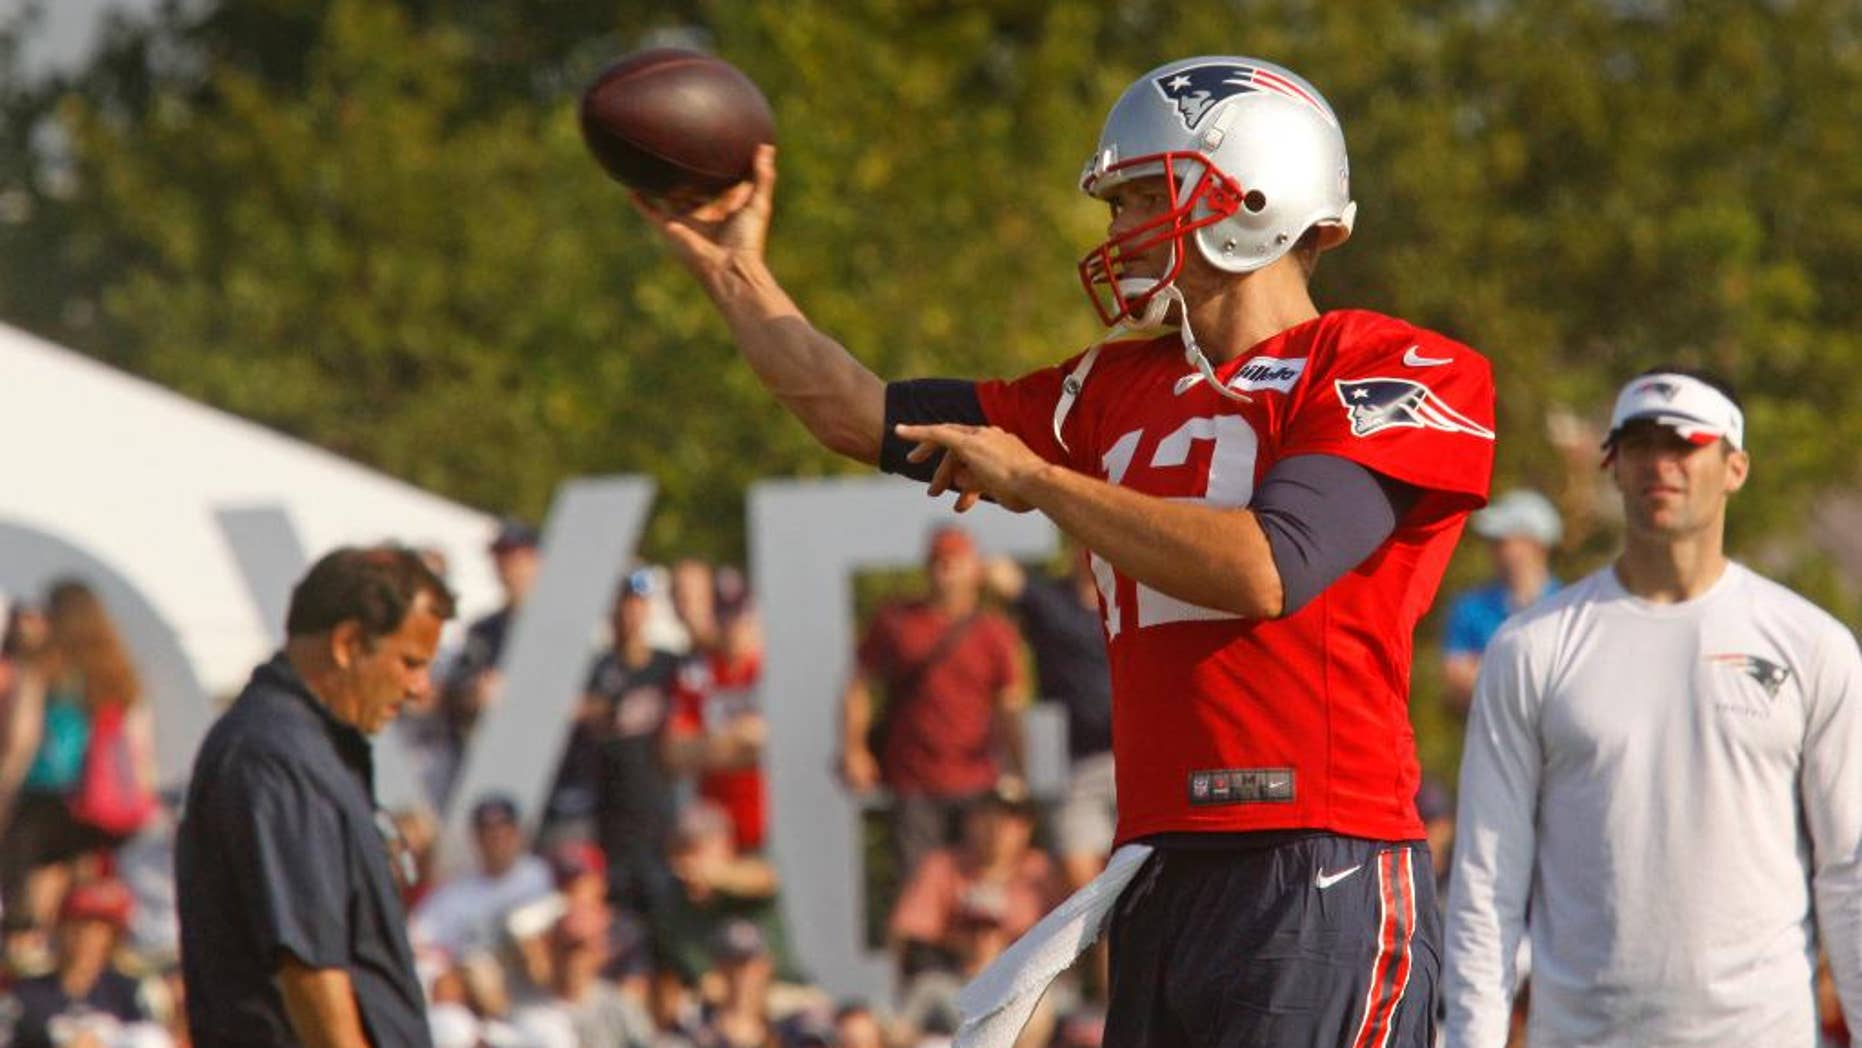 New England Patriots NFL teams quarterback Tom Brady (12) throws during a joint training camp with the Washington Redskins in Richmond, Va., Wednesday, Aug. 6, 2014. (AP Photo/Jay Paul)